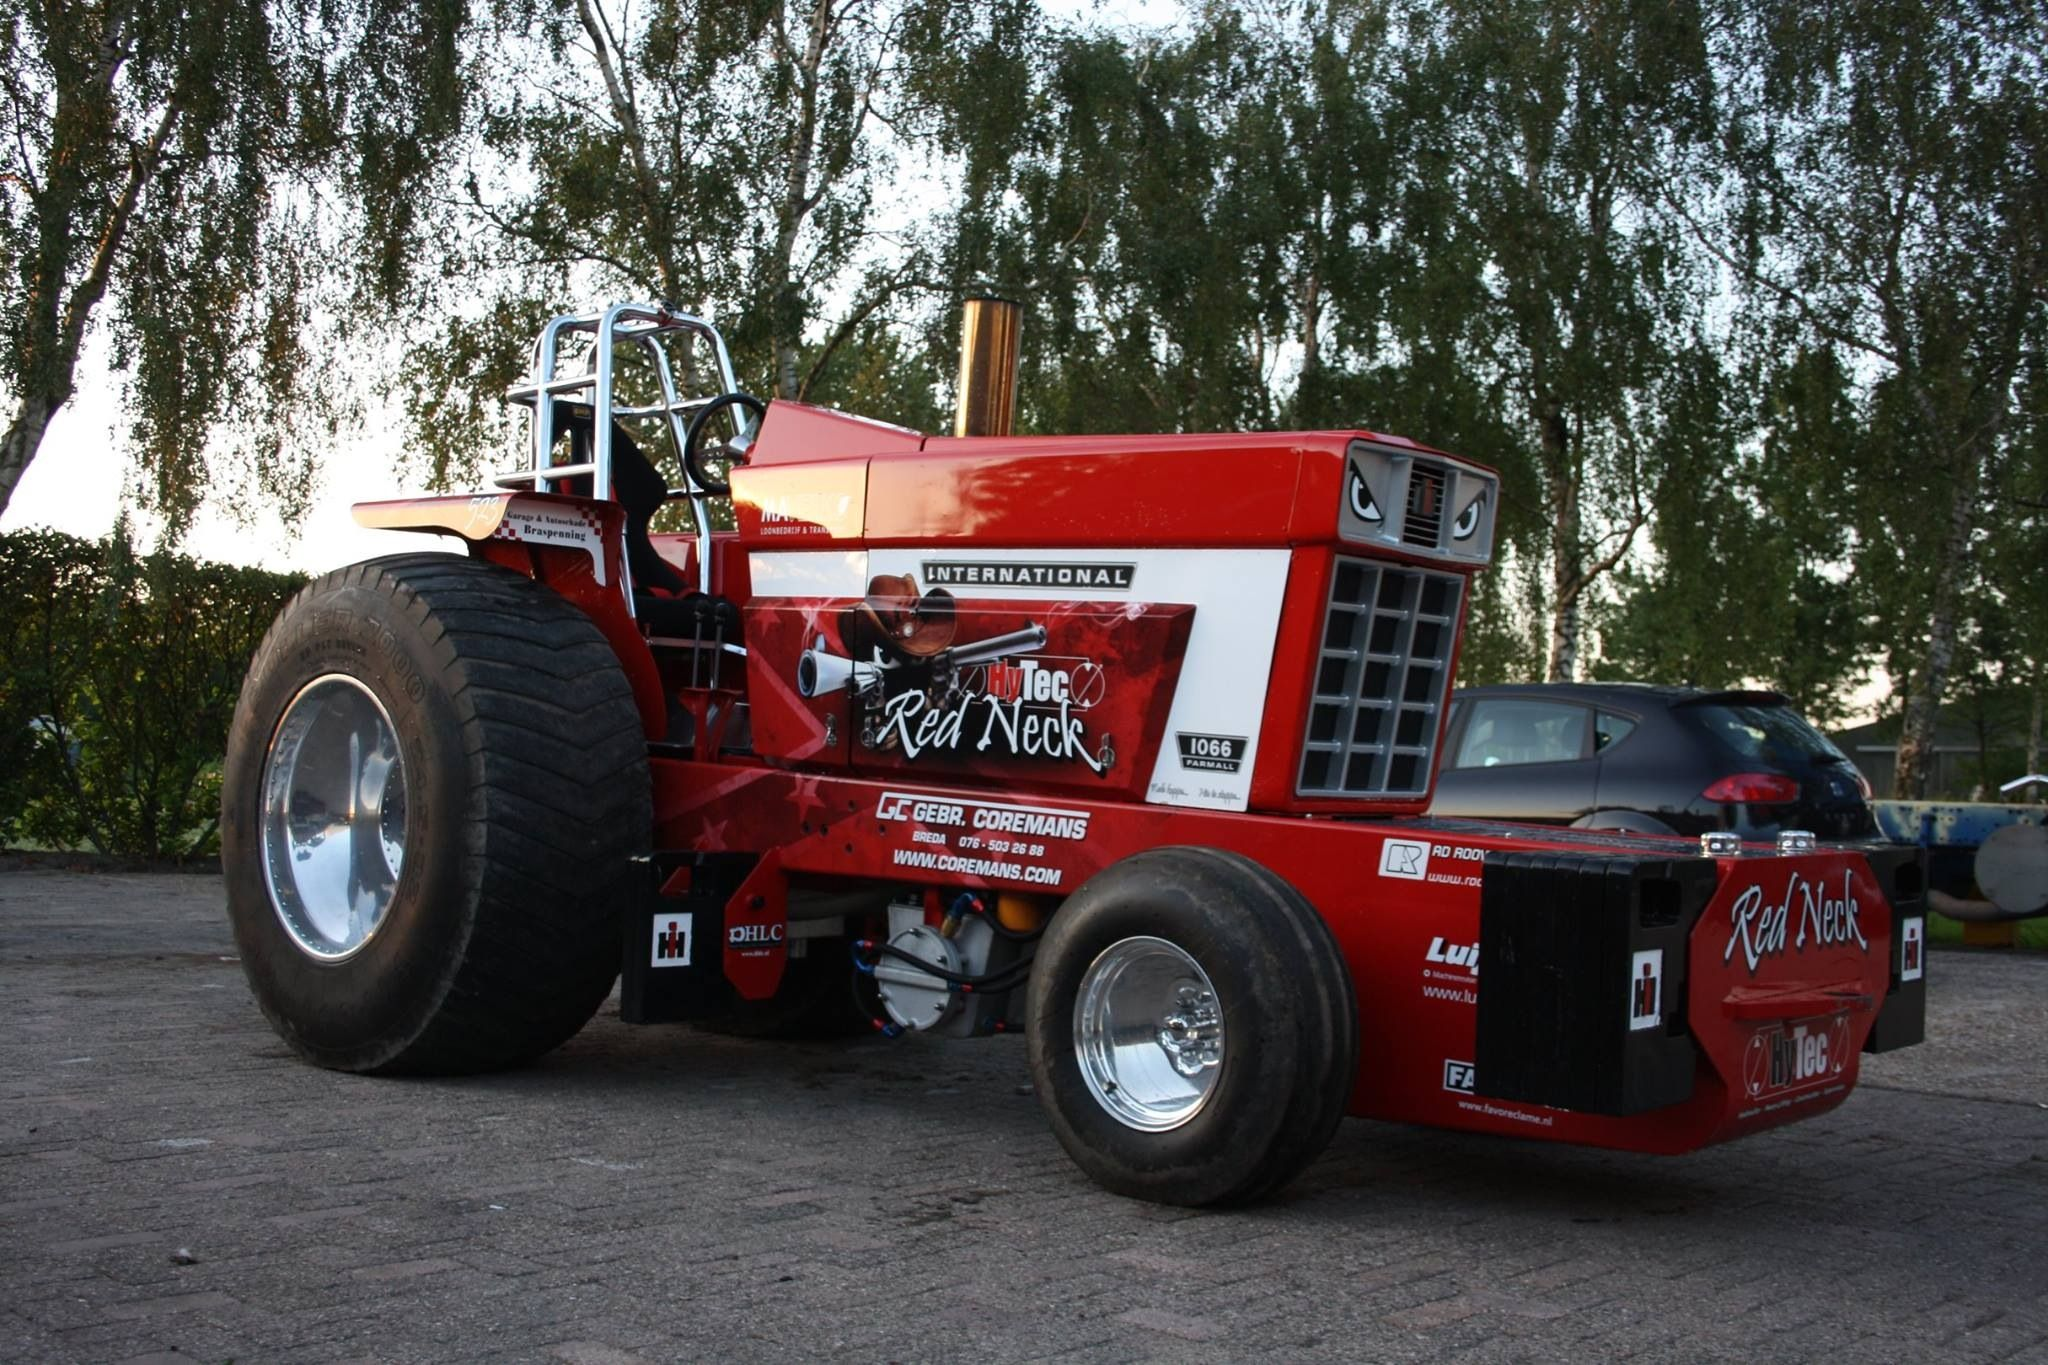 Ih Pulling Tractors : Hytec red neck tractor pulling pinterest